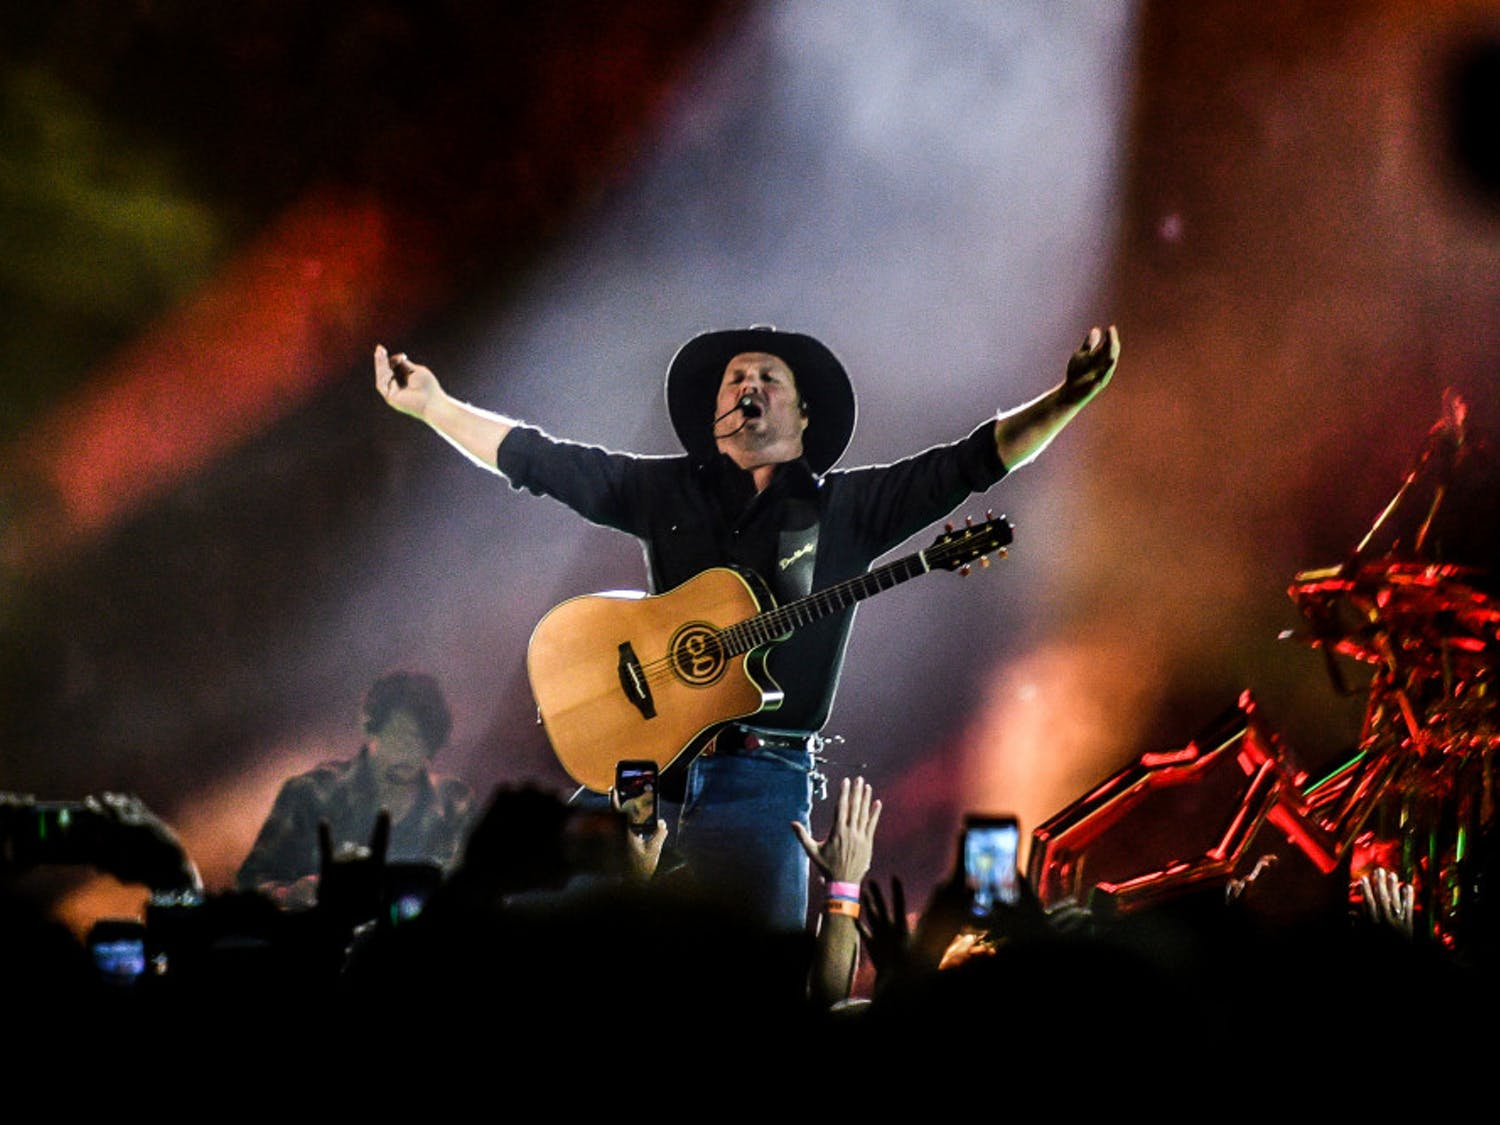 Garth rocks the Swamp despite early hiccups